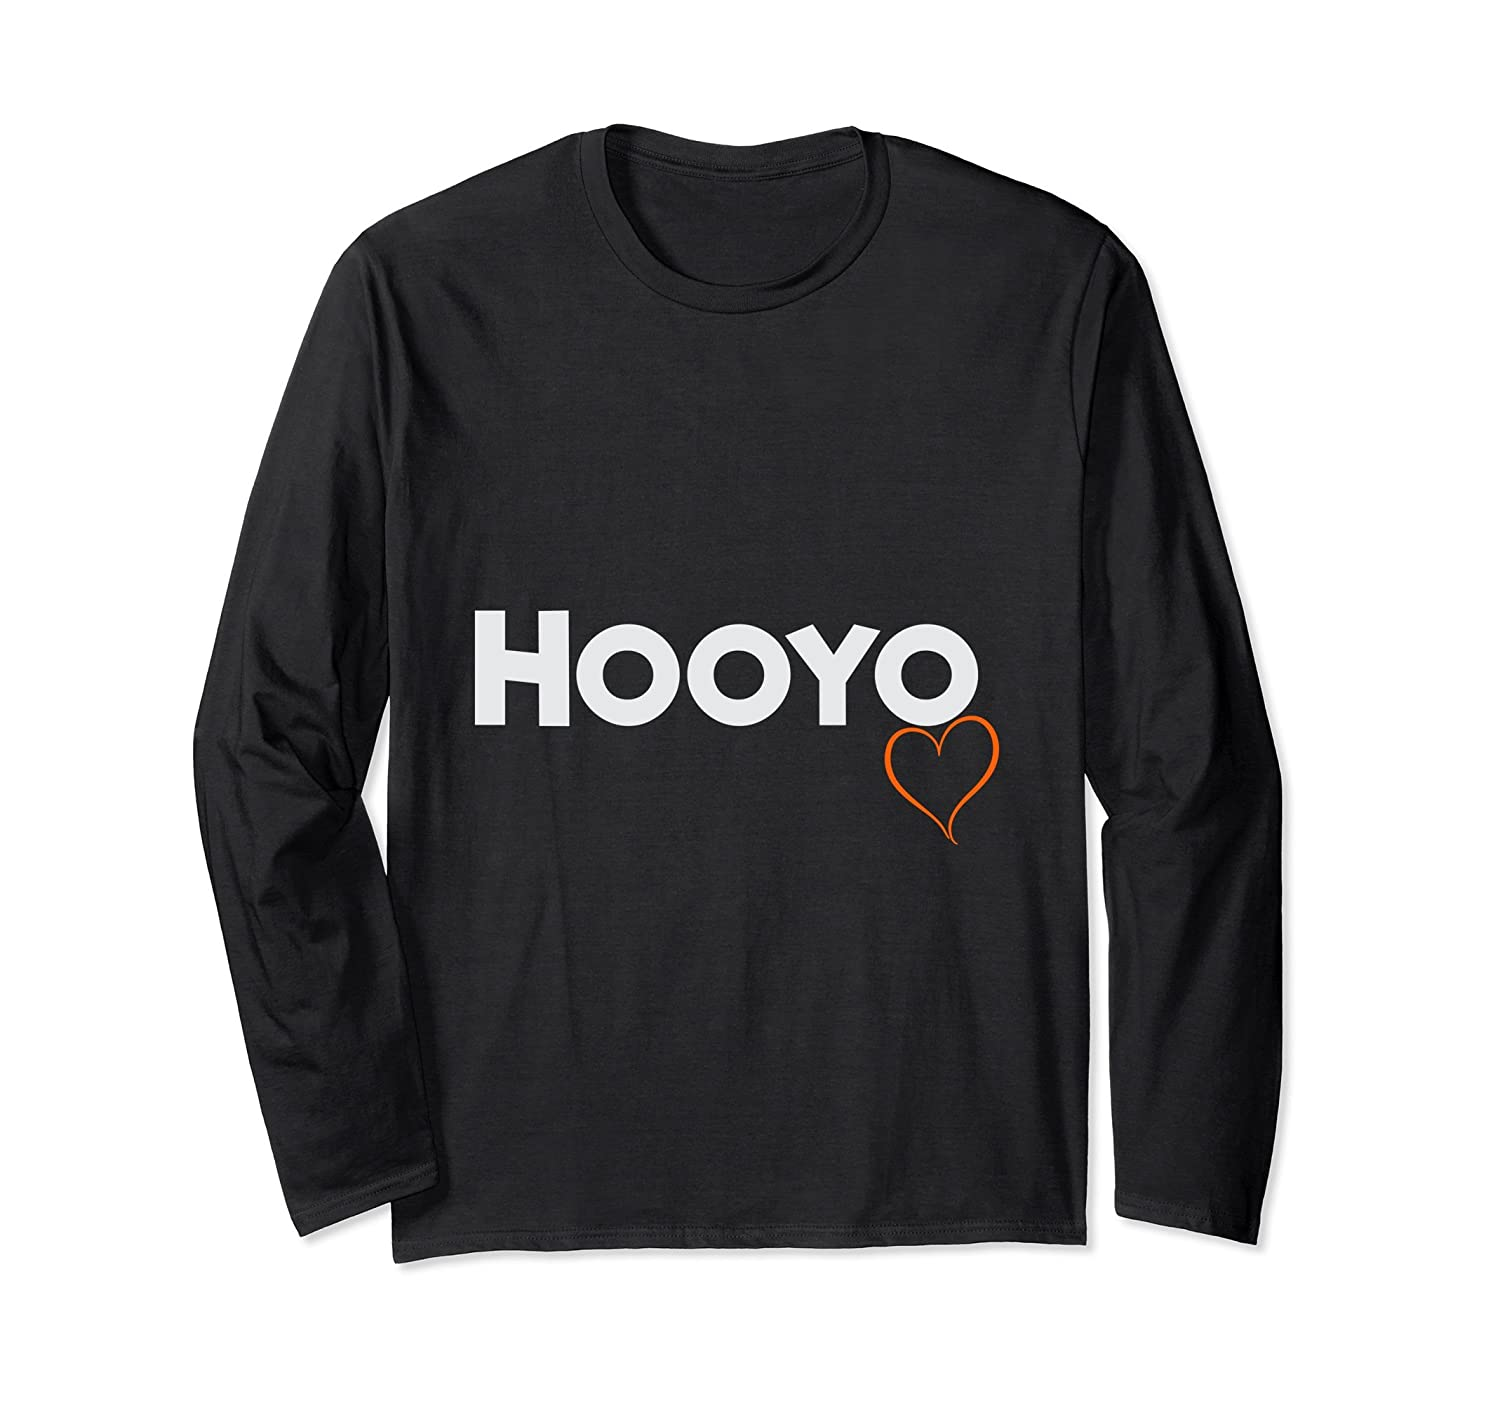 Hooyo T-shirt, Premium Lovely Hooyo Long sleeve shirt-fa